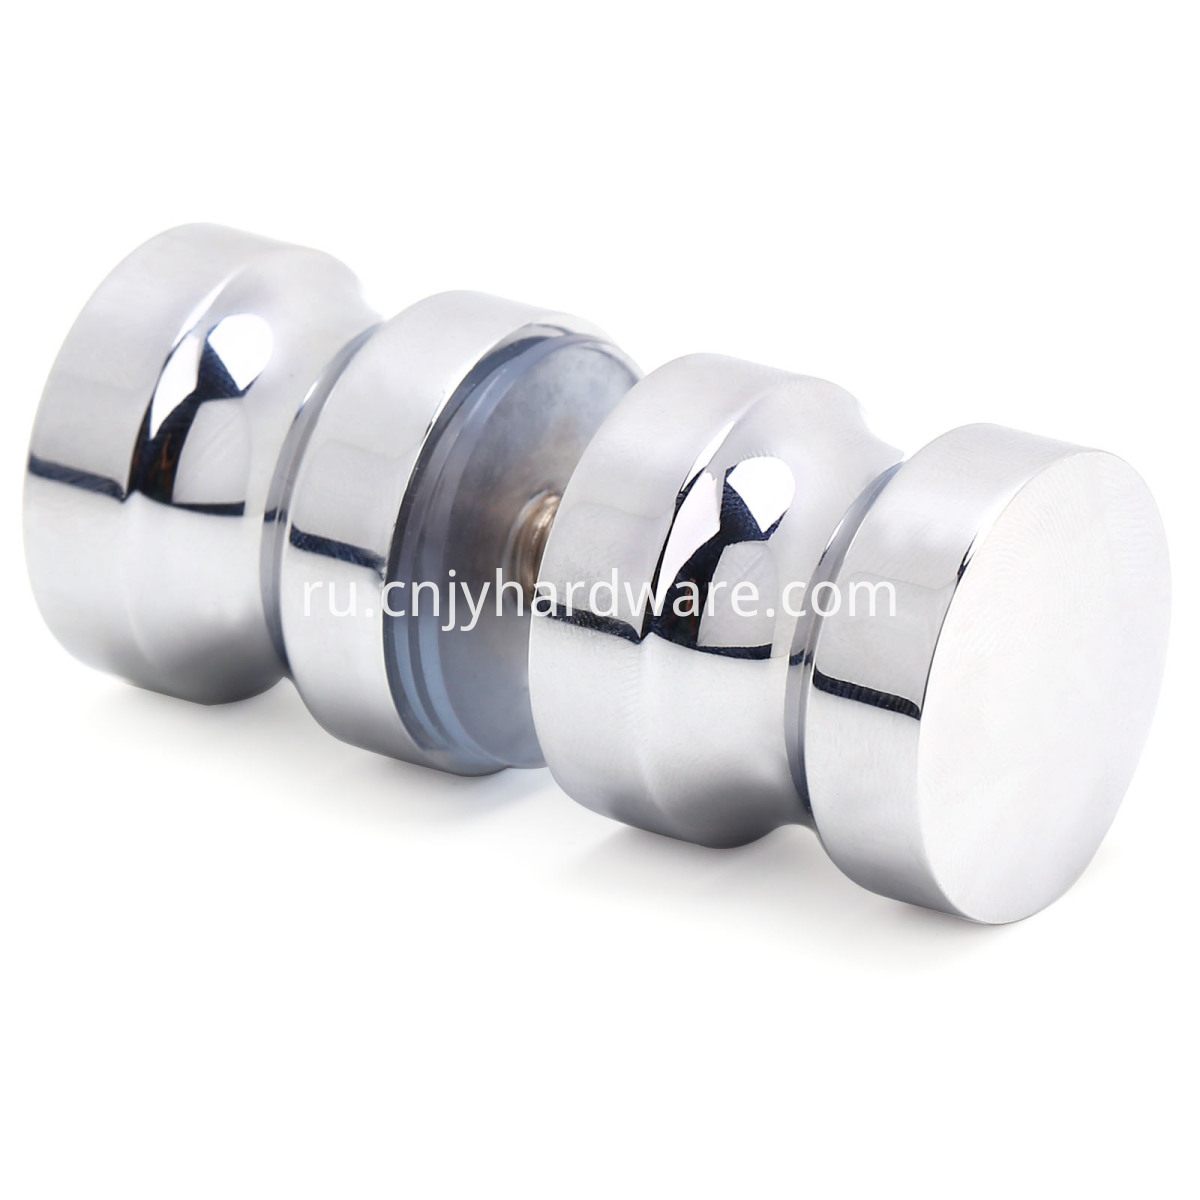 Interior glass door handles door knob